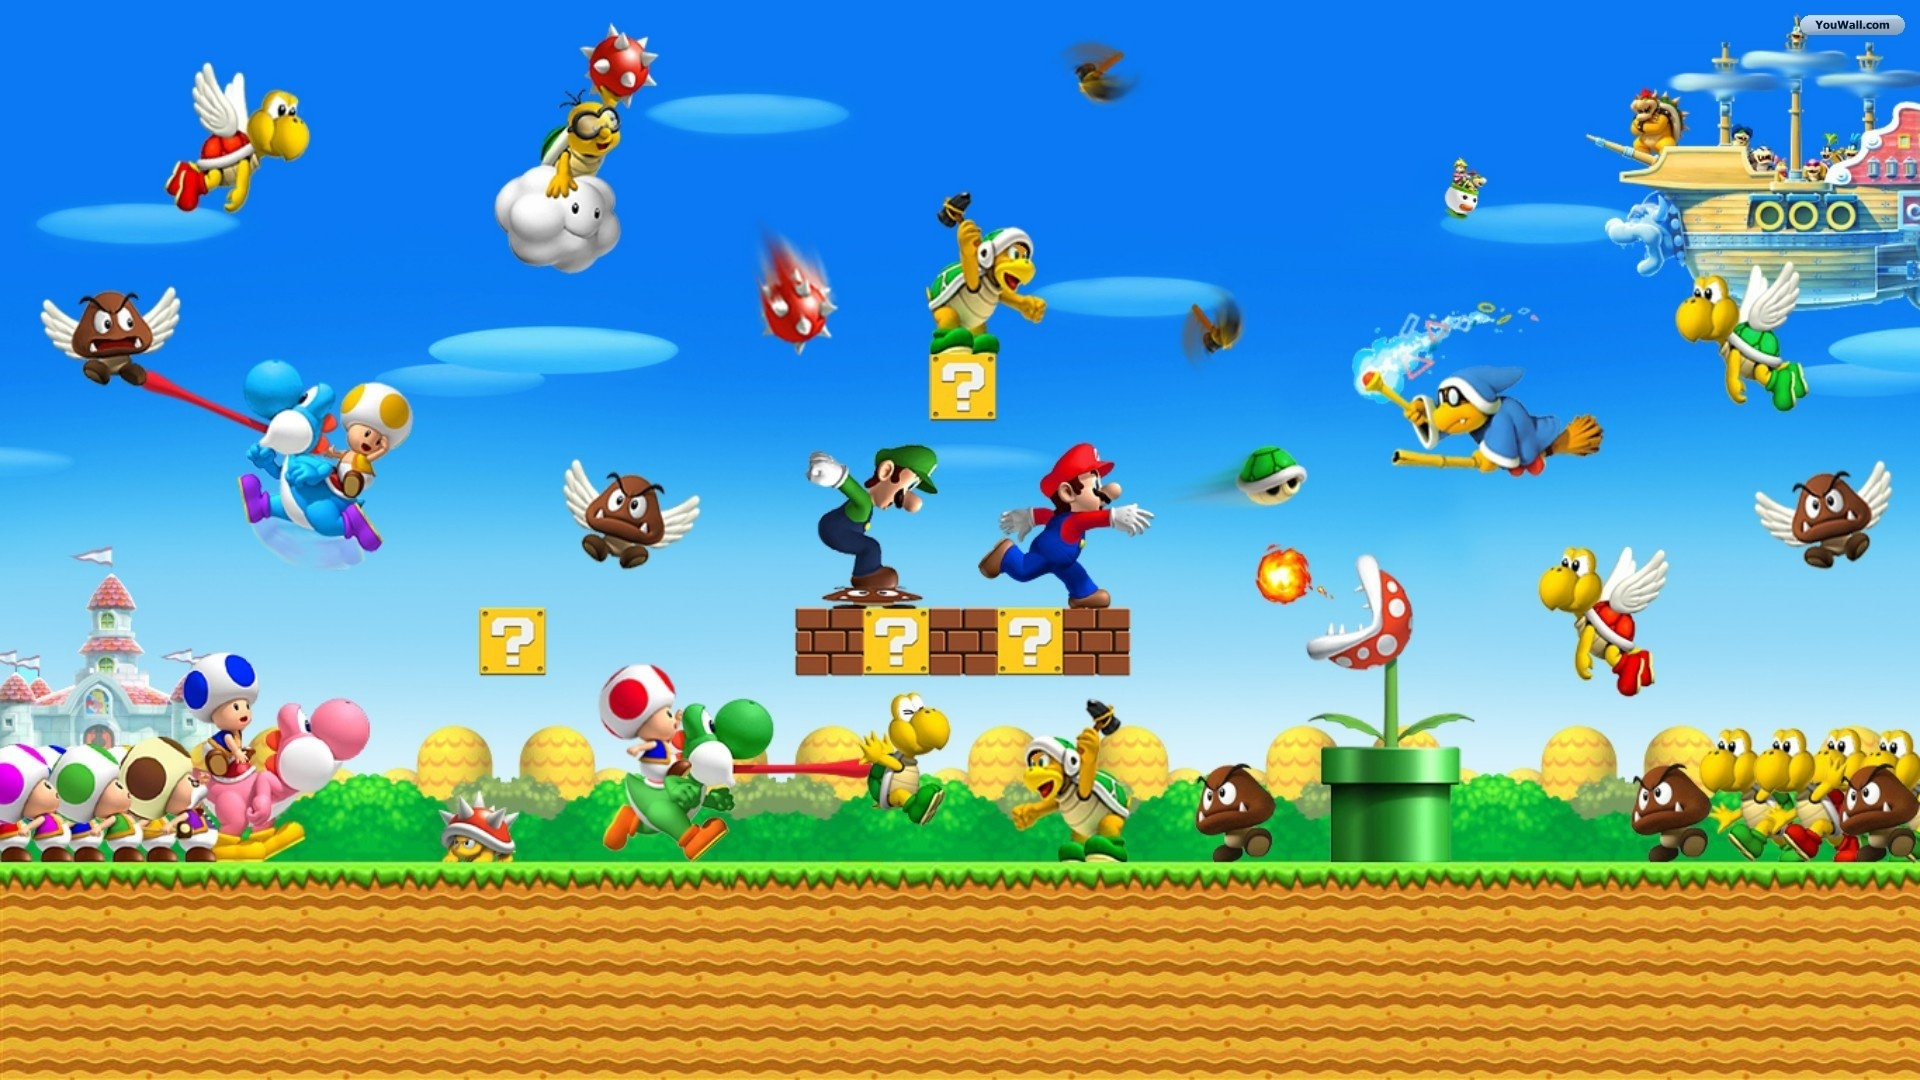 super mario wallpaper 5091 1920x1080 px ~ hdwallsource